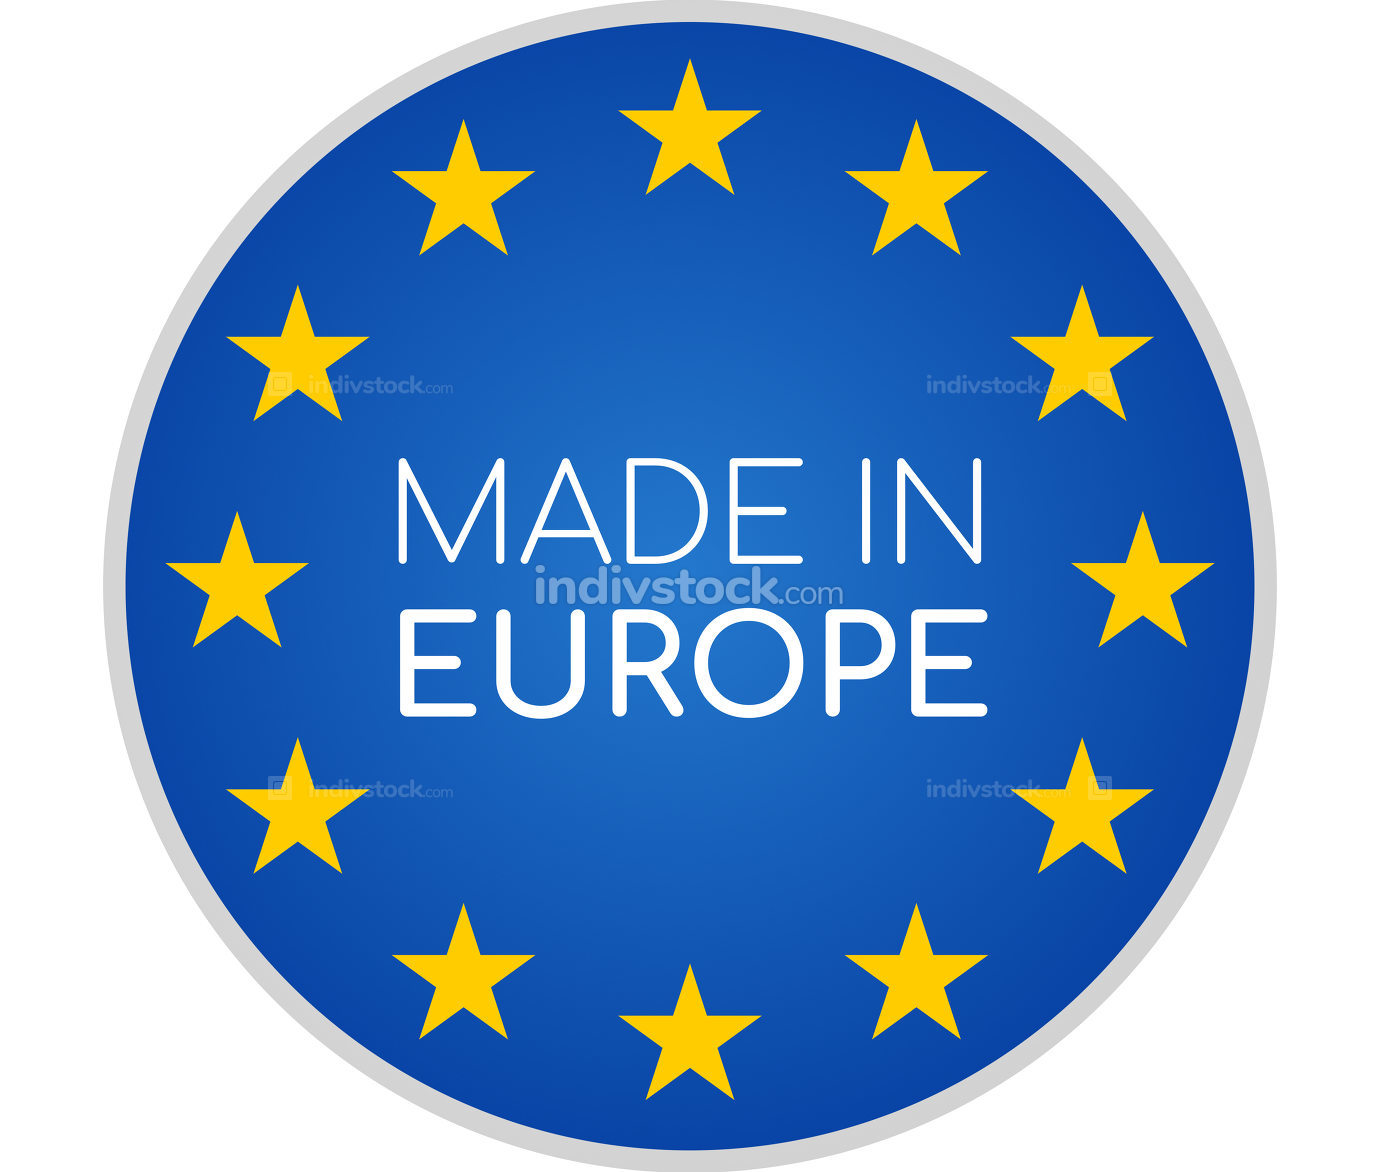 free download: made in Europe symbol icon 3d-illustration isolated on white